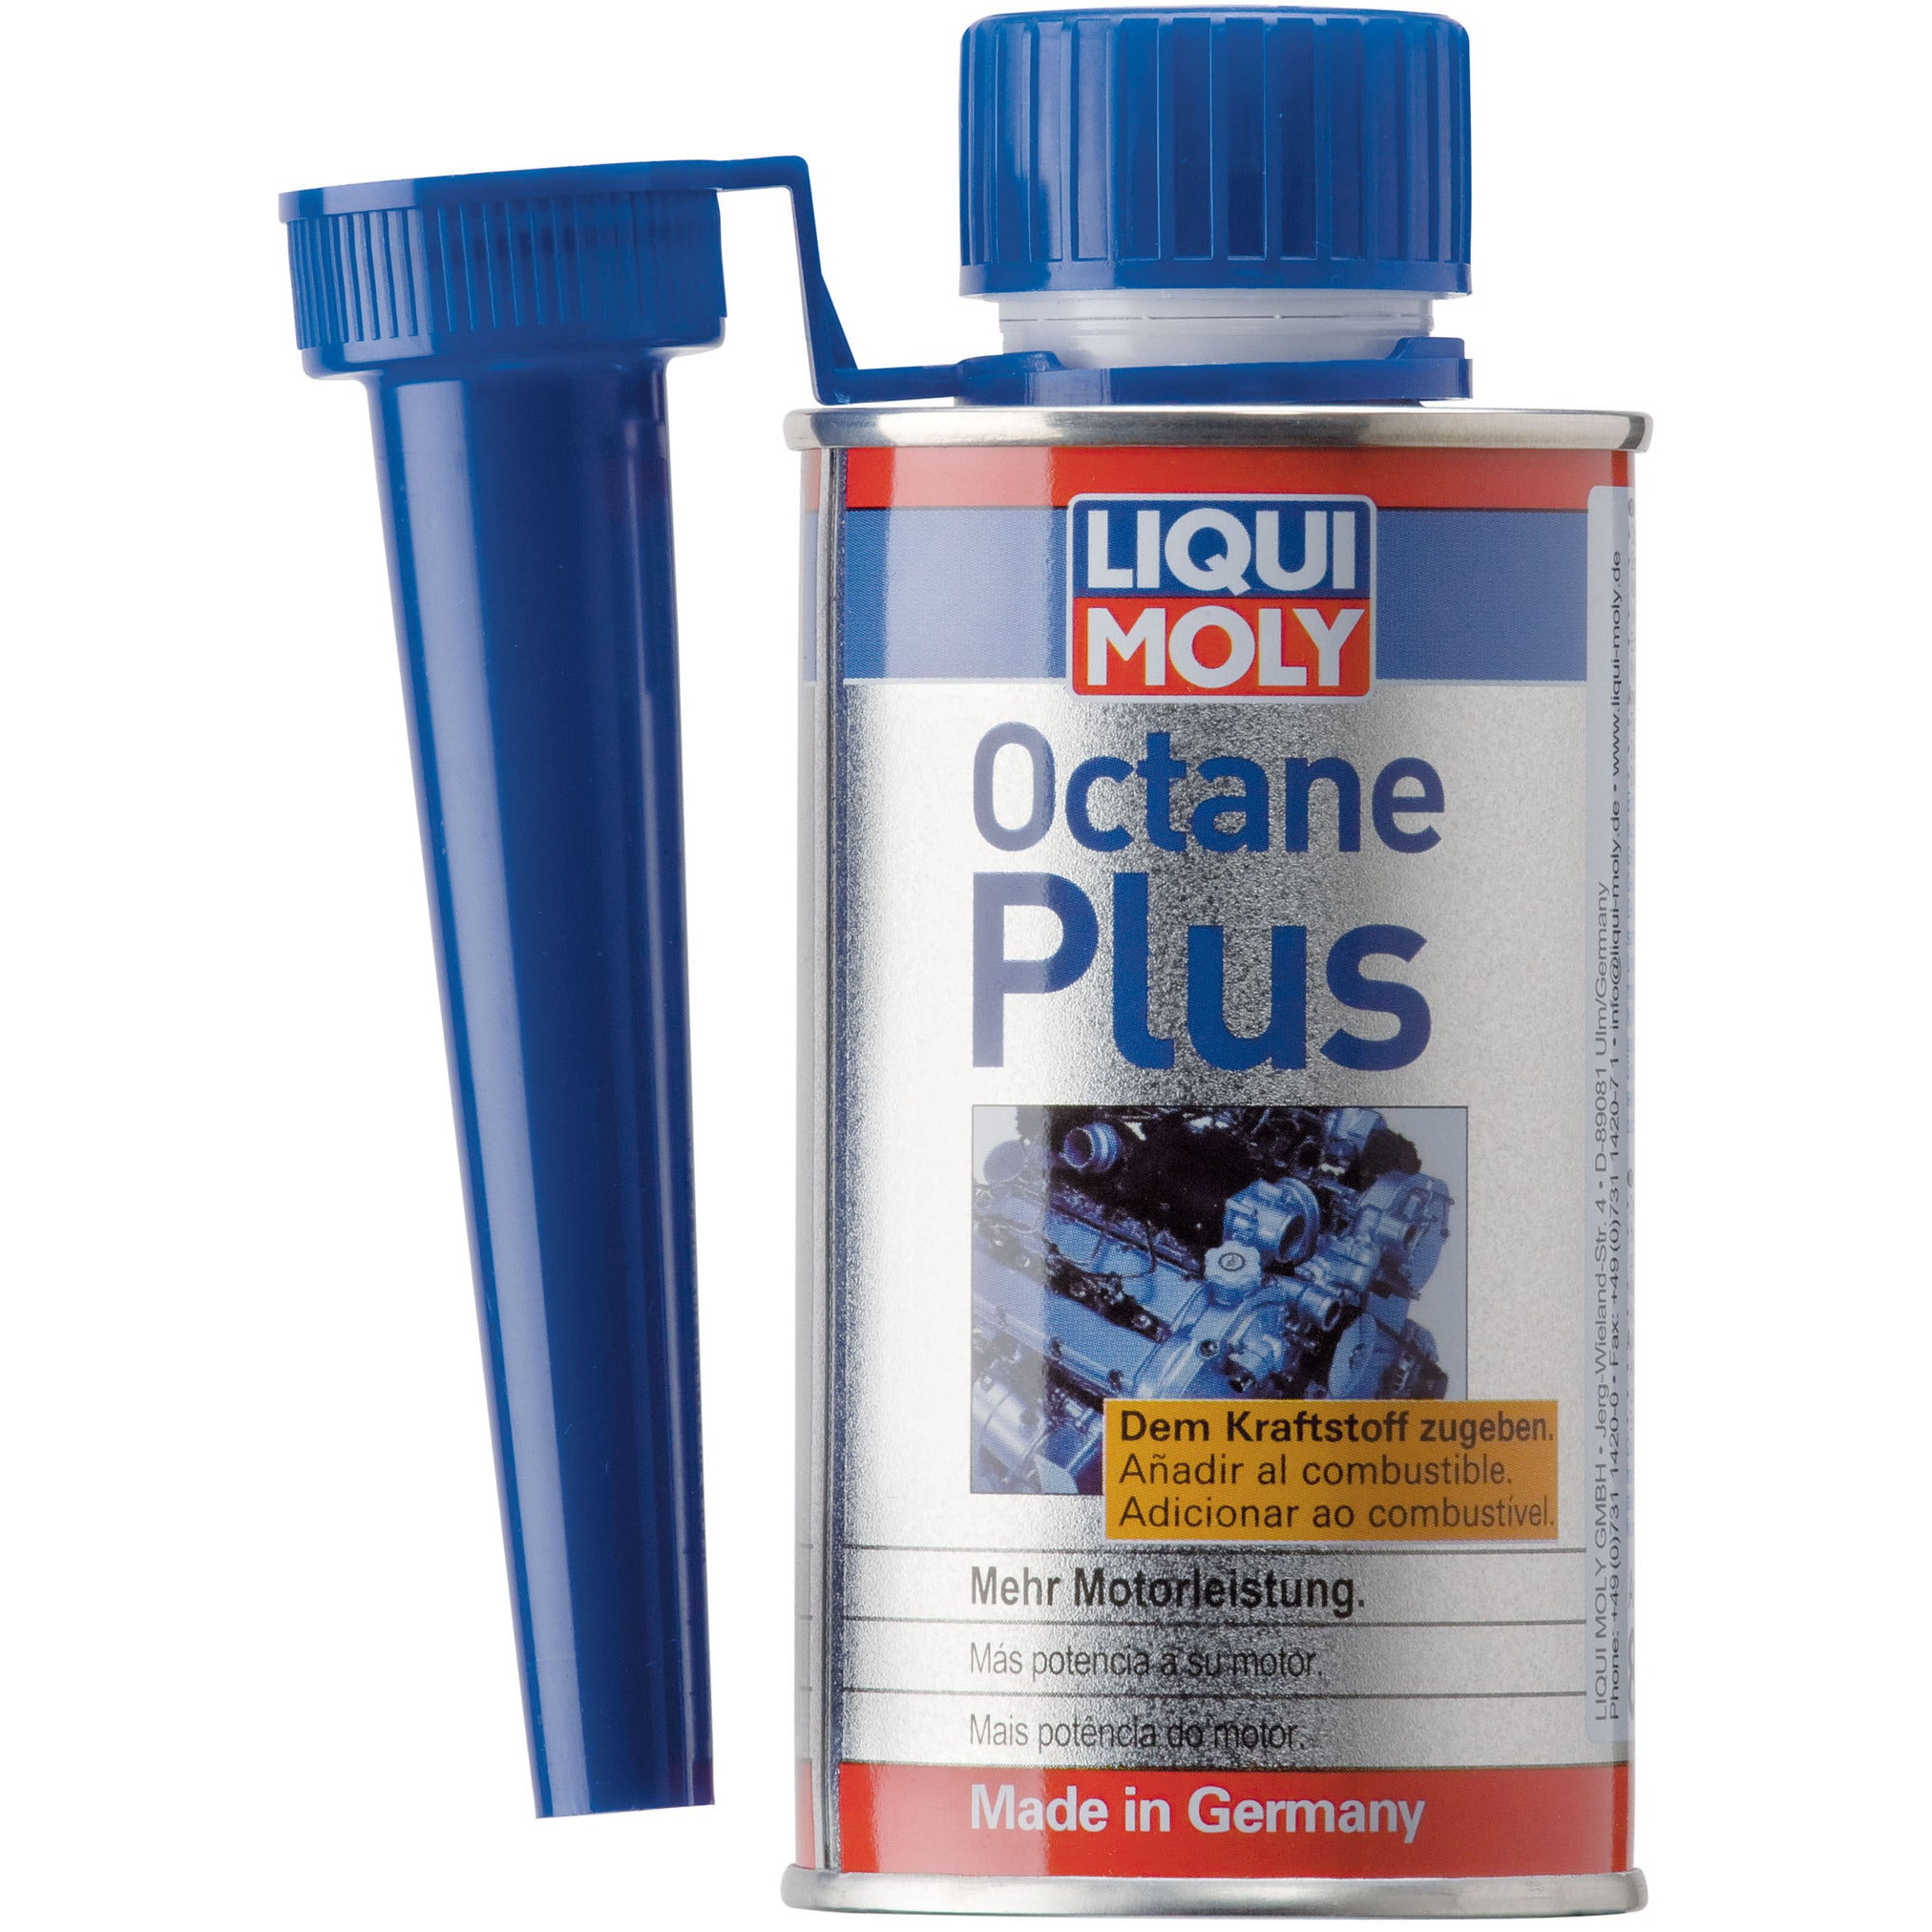 Liqui Moly Octane Plus (150 ml)